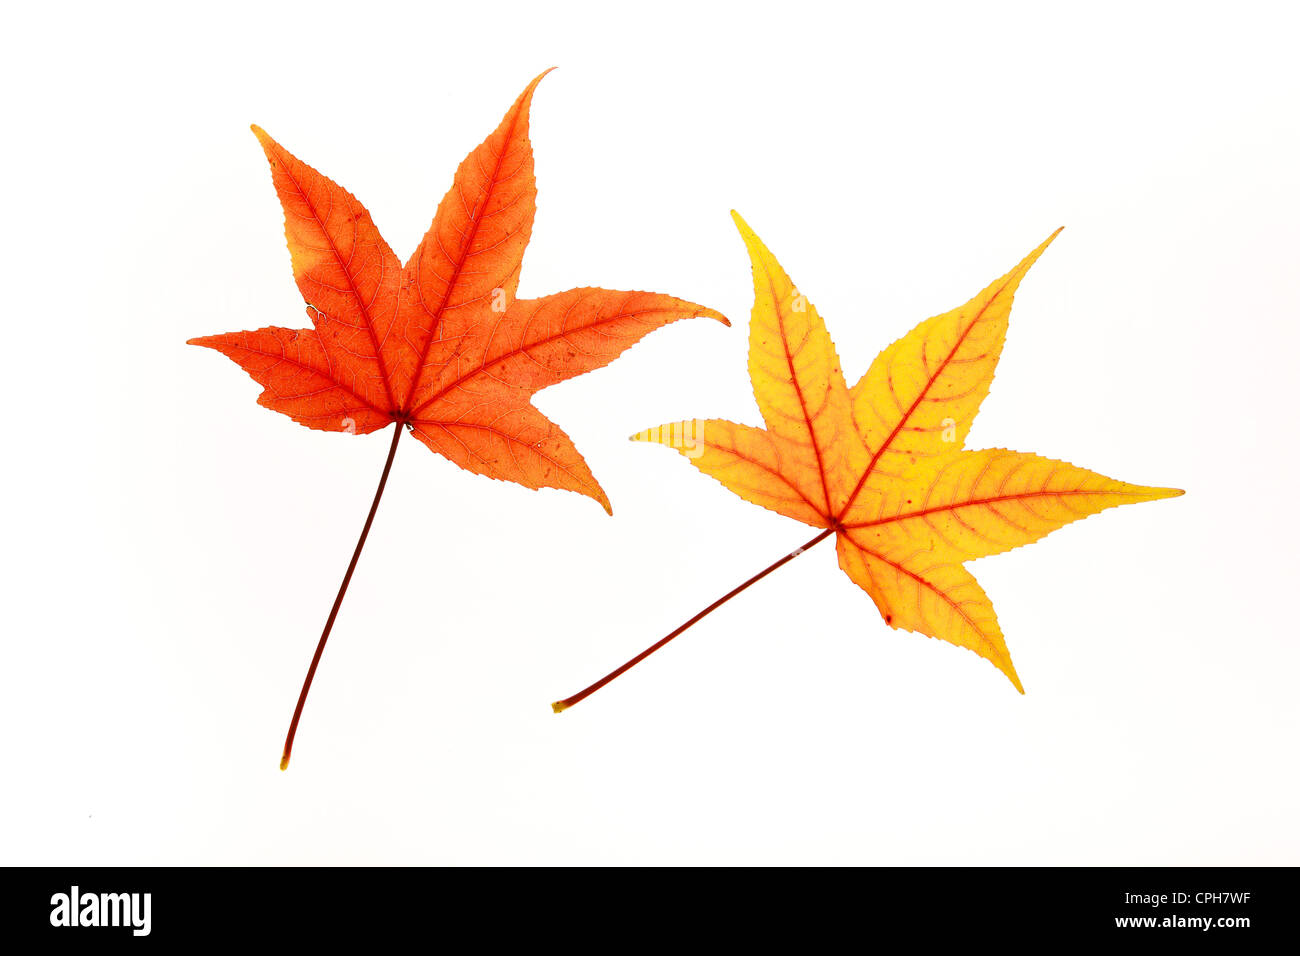 Maple, leaf, leaves, detail, isolated, back light, autumn, autumn color, autumn colors, autumn foliage, colouring, Stock Photo